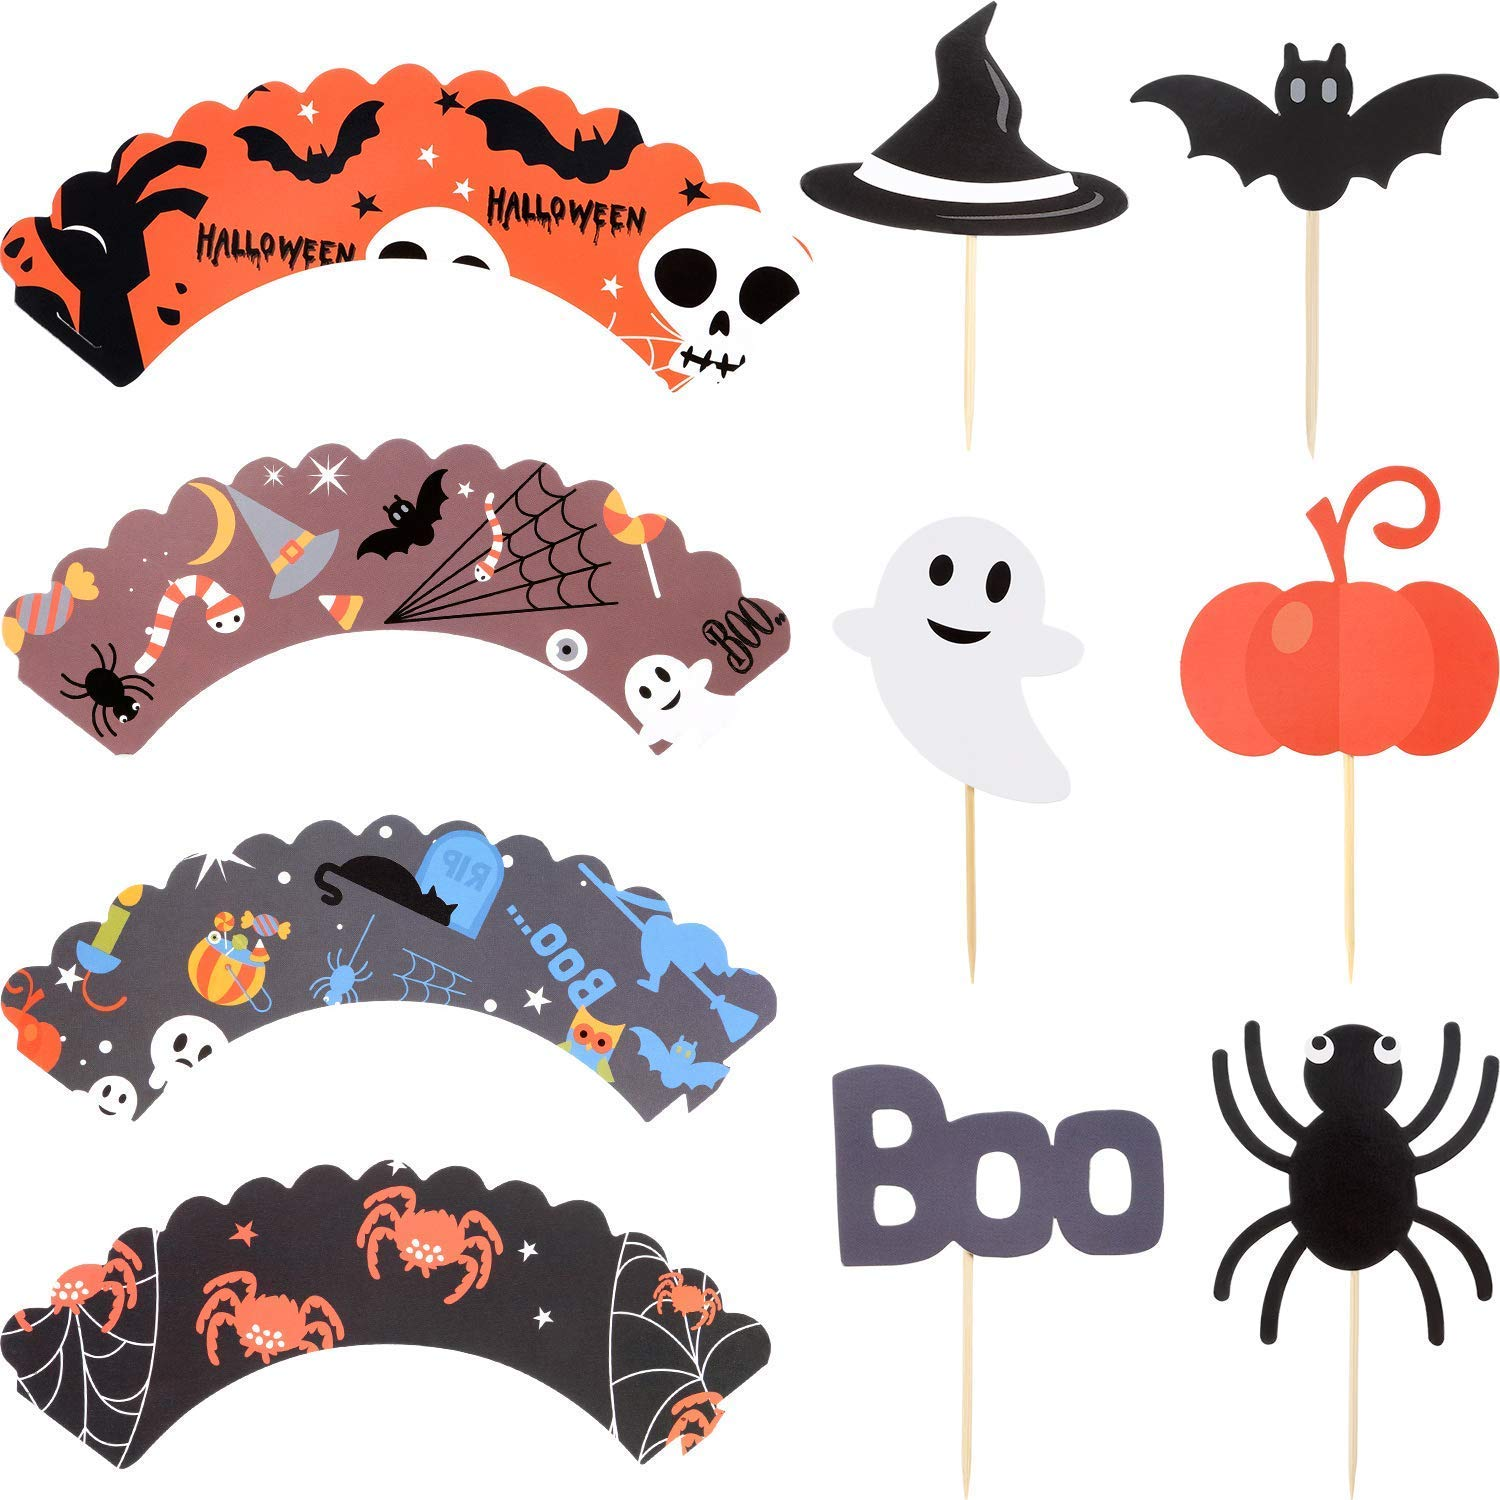 Amooy DiZi Halloween Cupcake Wrapper Cases 24 Pcs Bake Paper Cups Baking Cup Muffin Case and Cupcake Toppers for Wedding Halloween Party Birthday Decoration